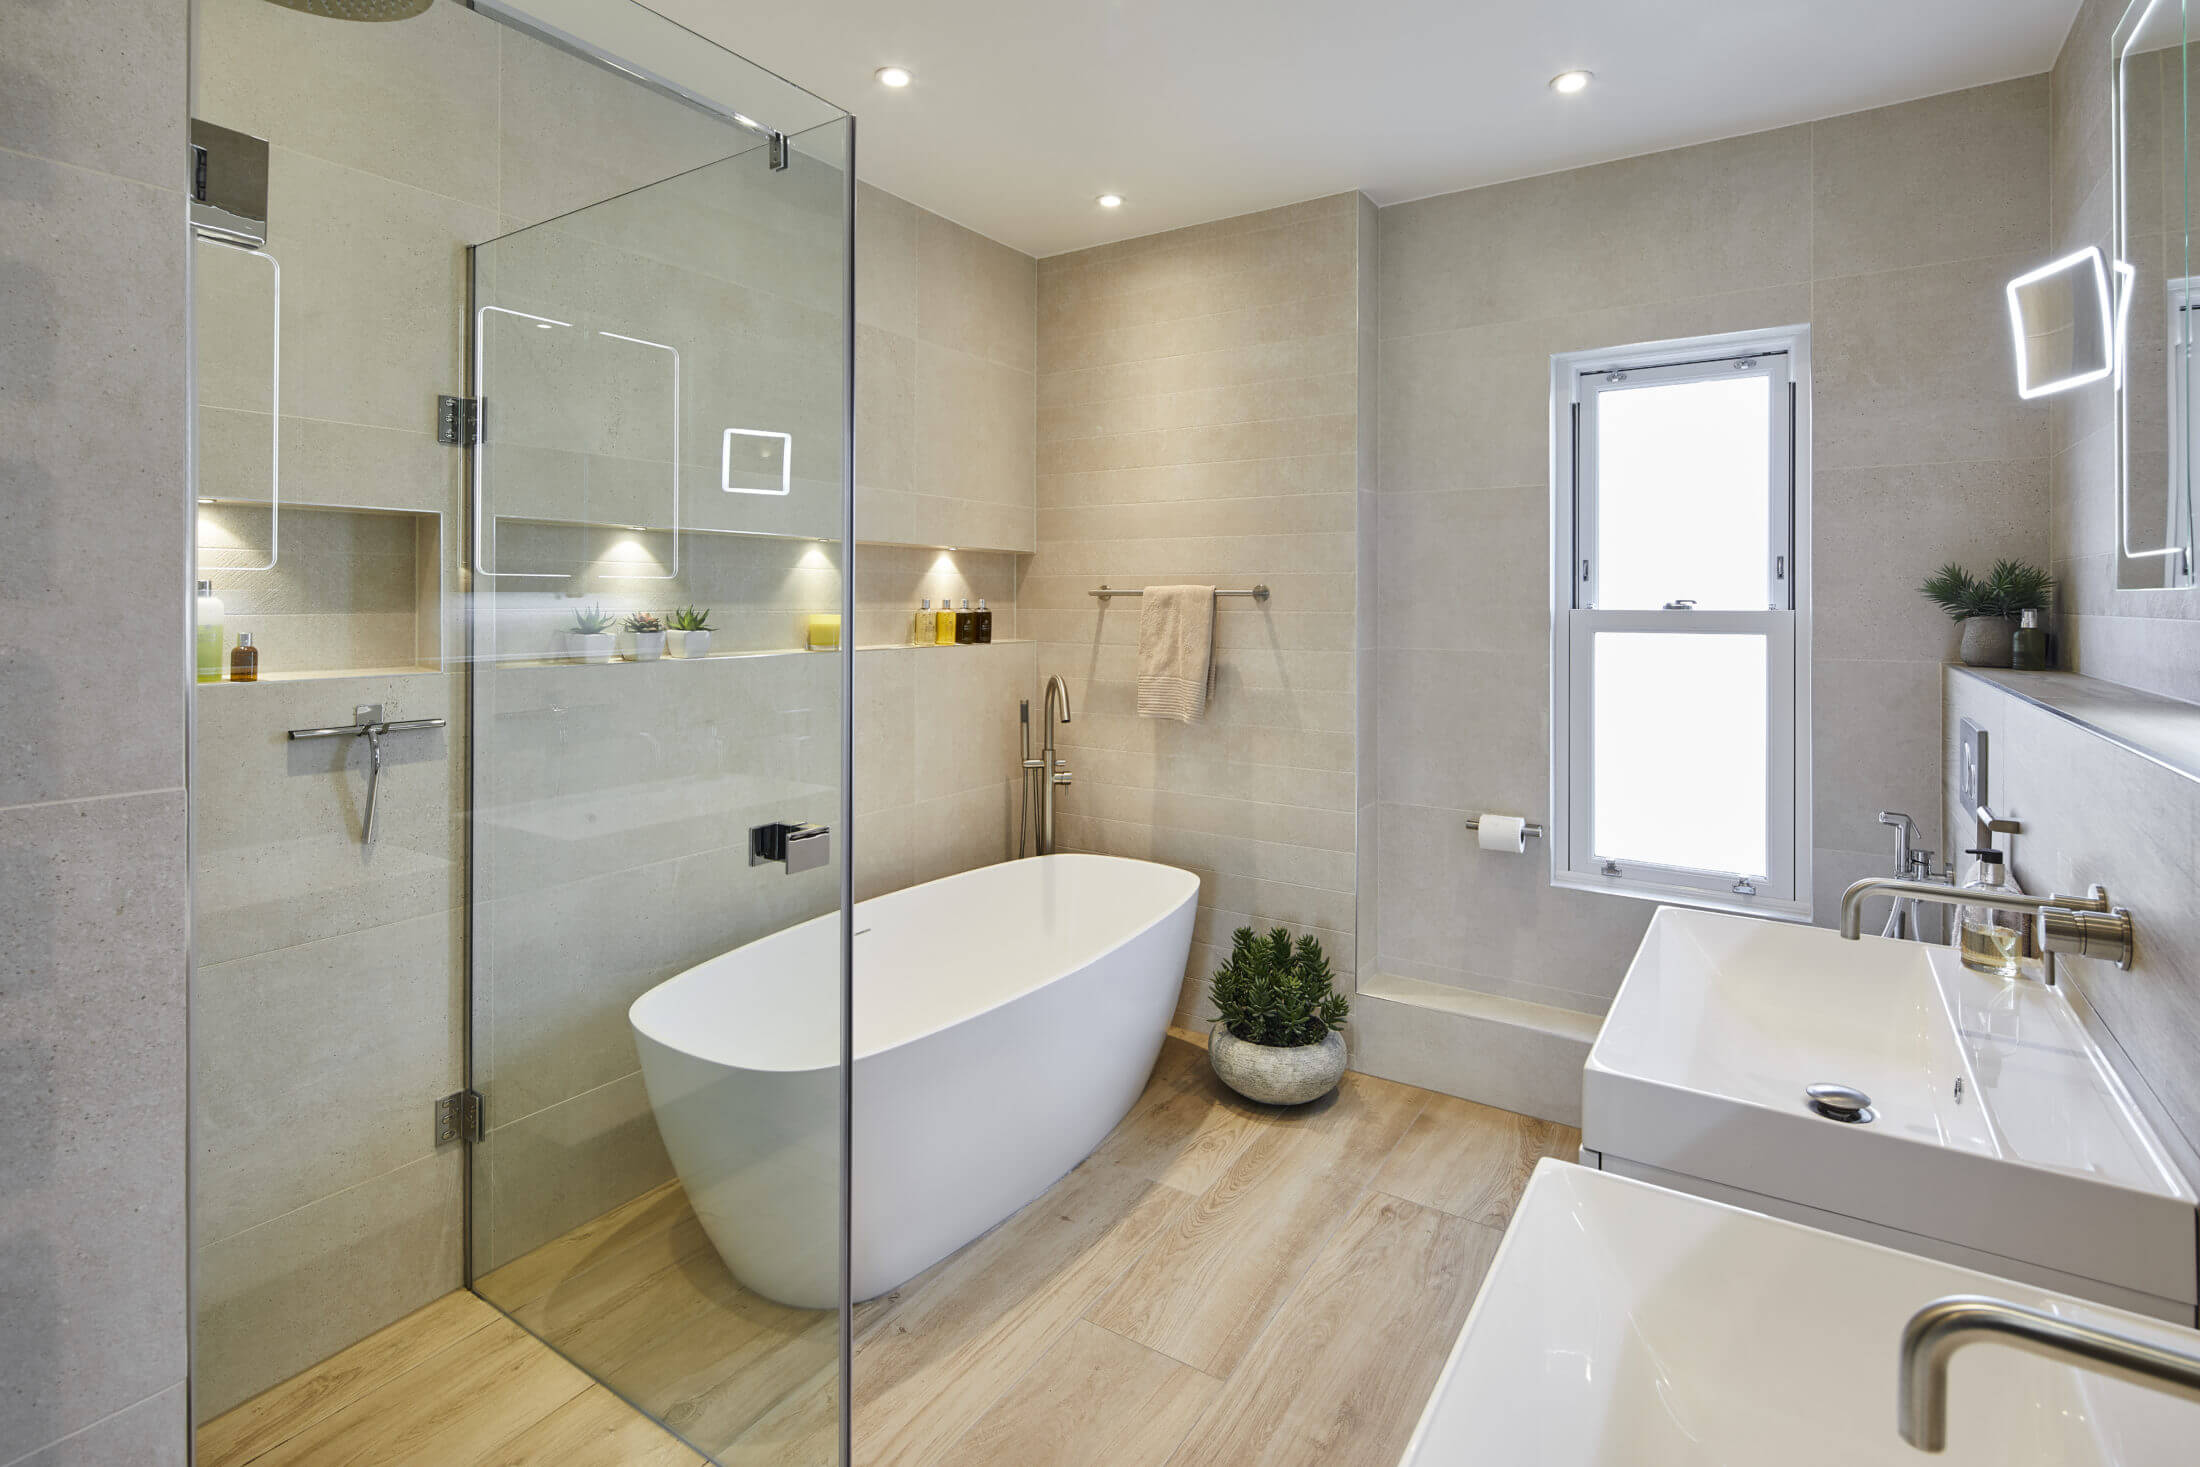 Ensuite in Thames Ditton